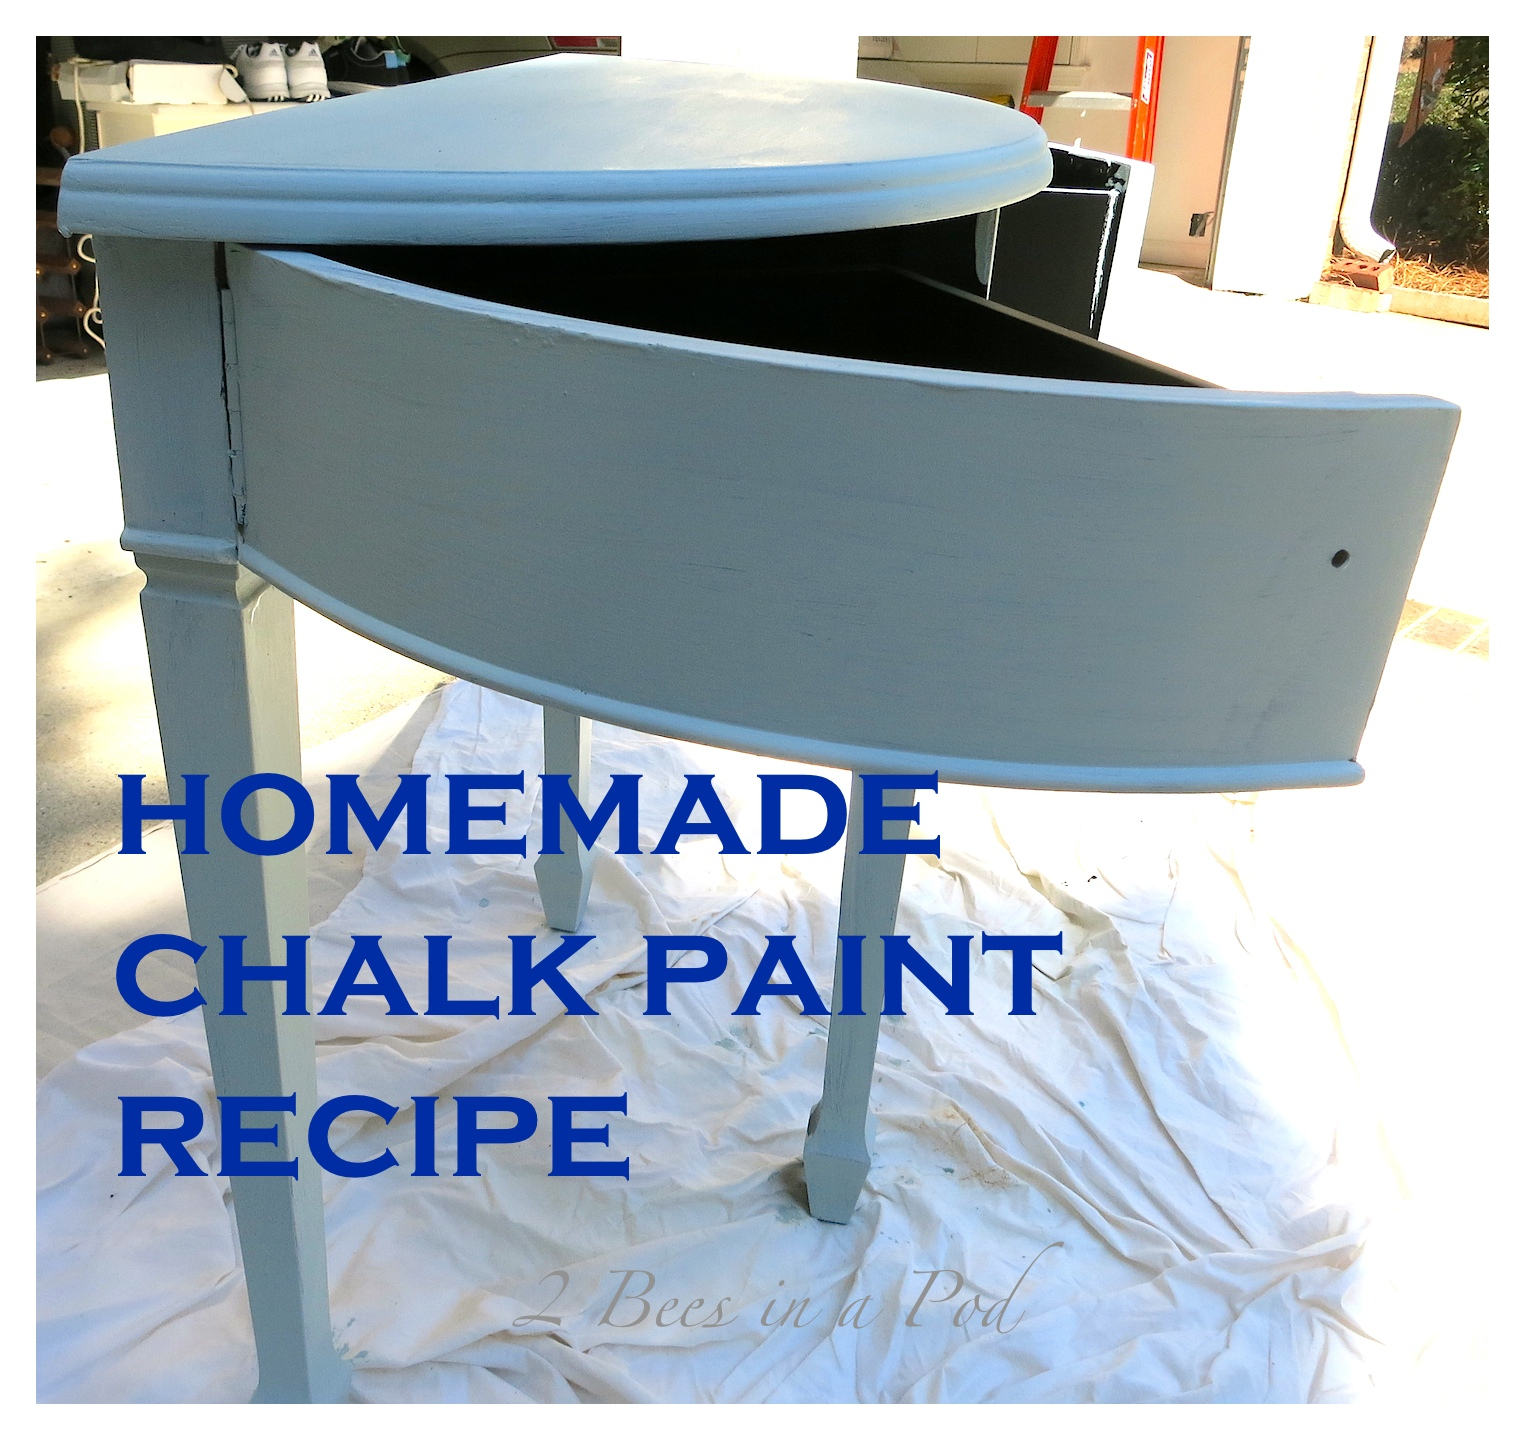 Homemade Chalk Paint Recipe using Plaster of Paris, water and latex paint.